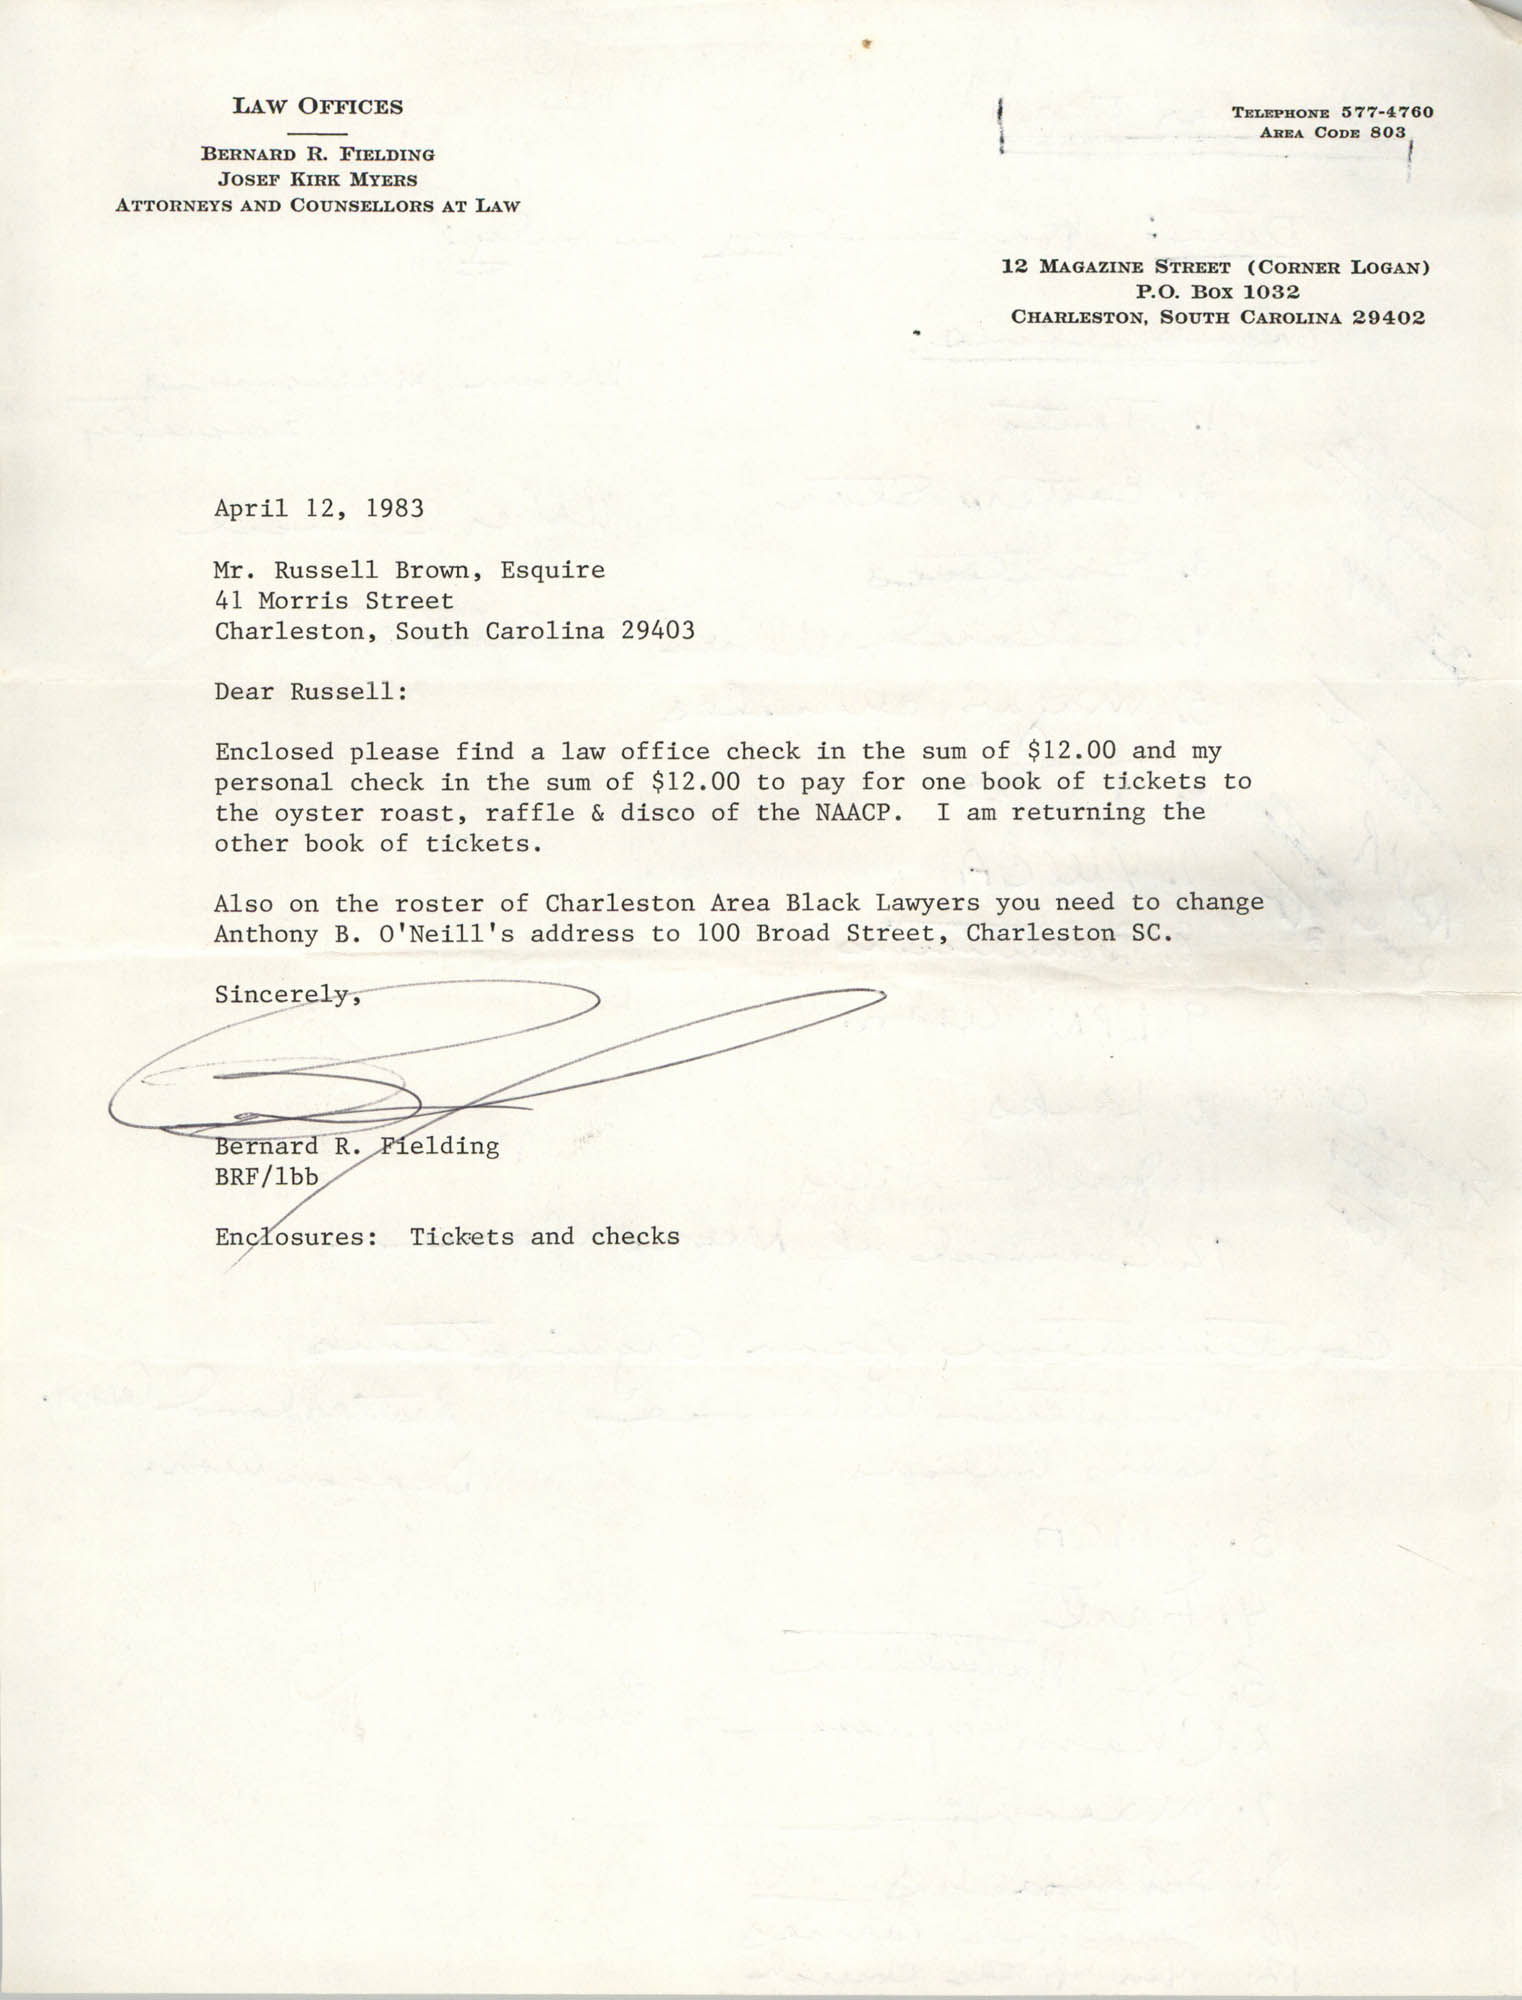 Letter from Bernard R. Fielding to Russell Brown, April 12, 1983